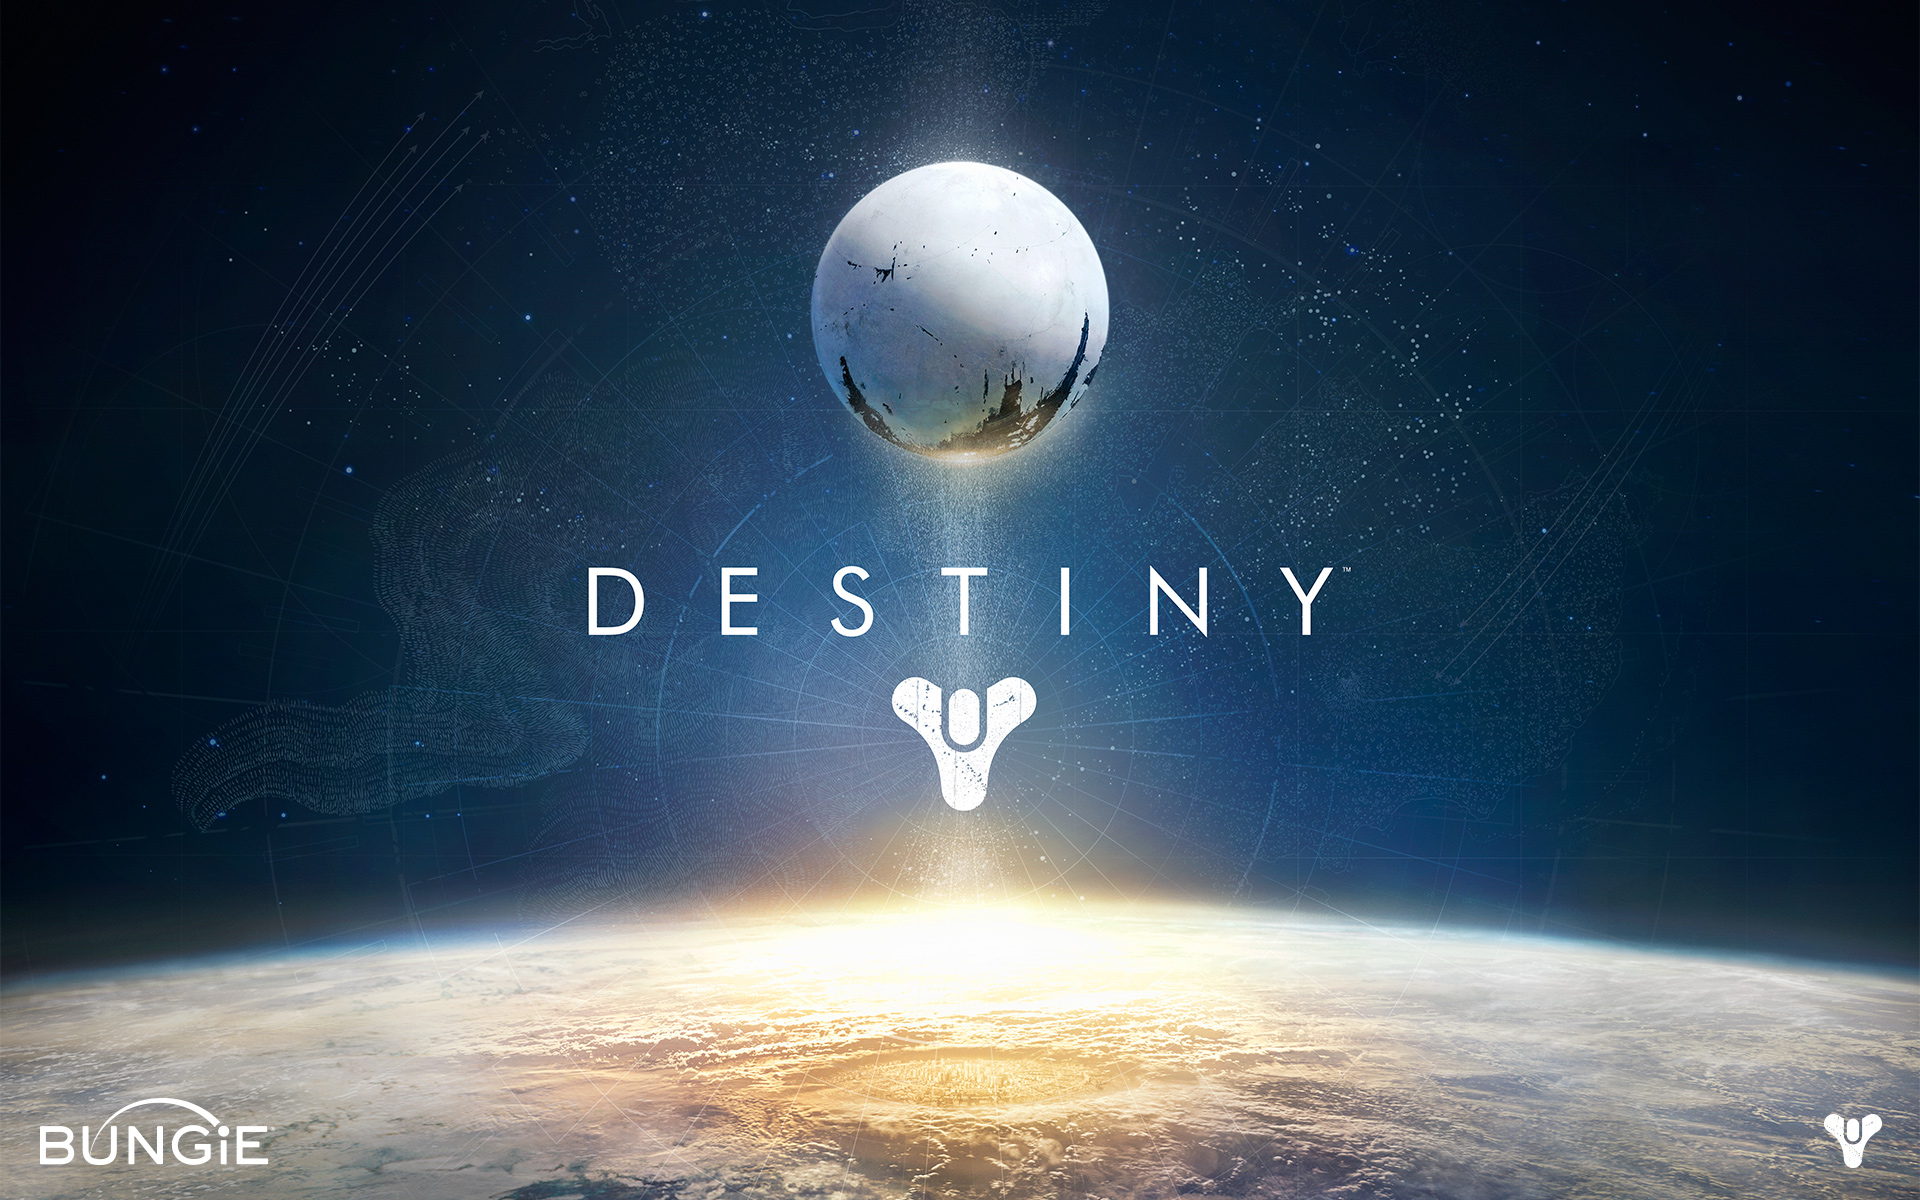 This is the poster for Destiny, a first person shooter by Bungie, Inc. Makes for a good Destiny Wallpaper too